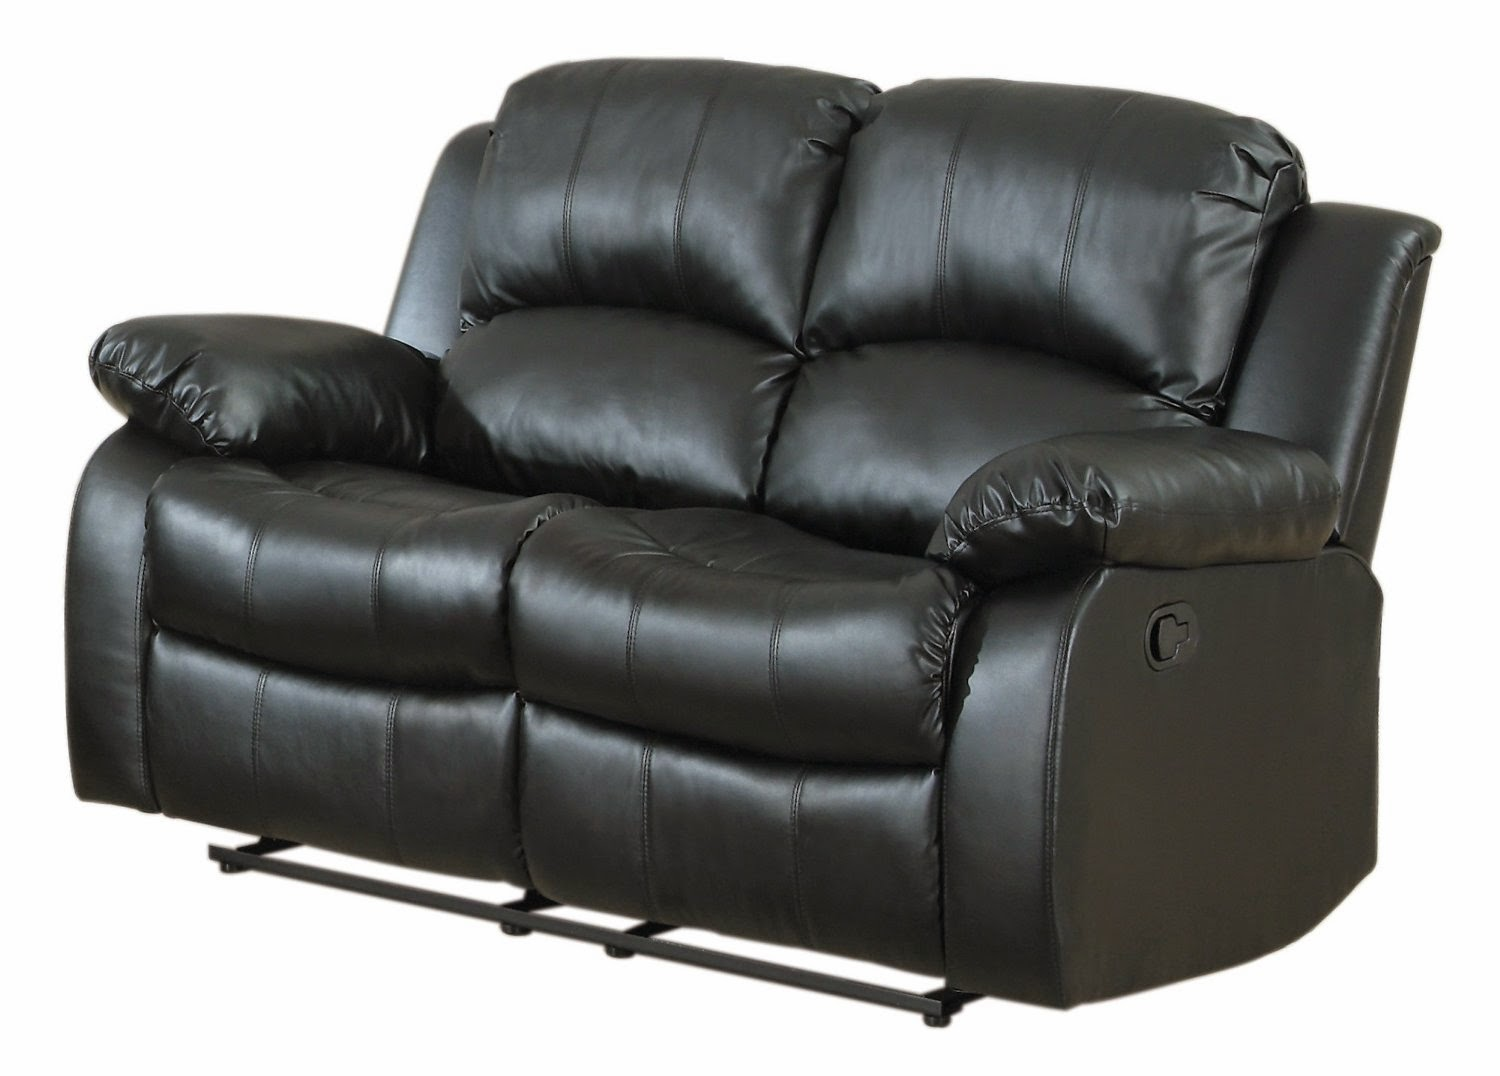 Cheap Recliner Sofas For Sale Black Leather Reclining Sofa And Loveseat